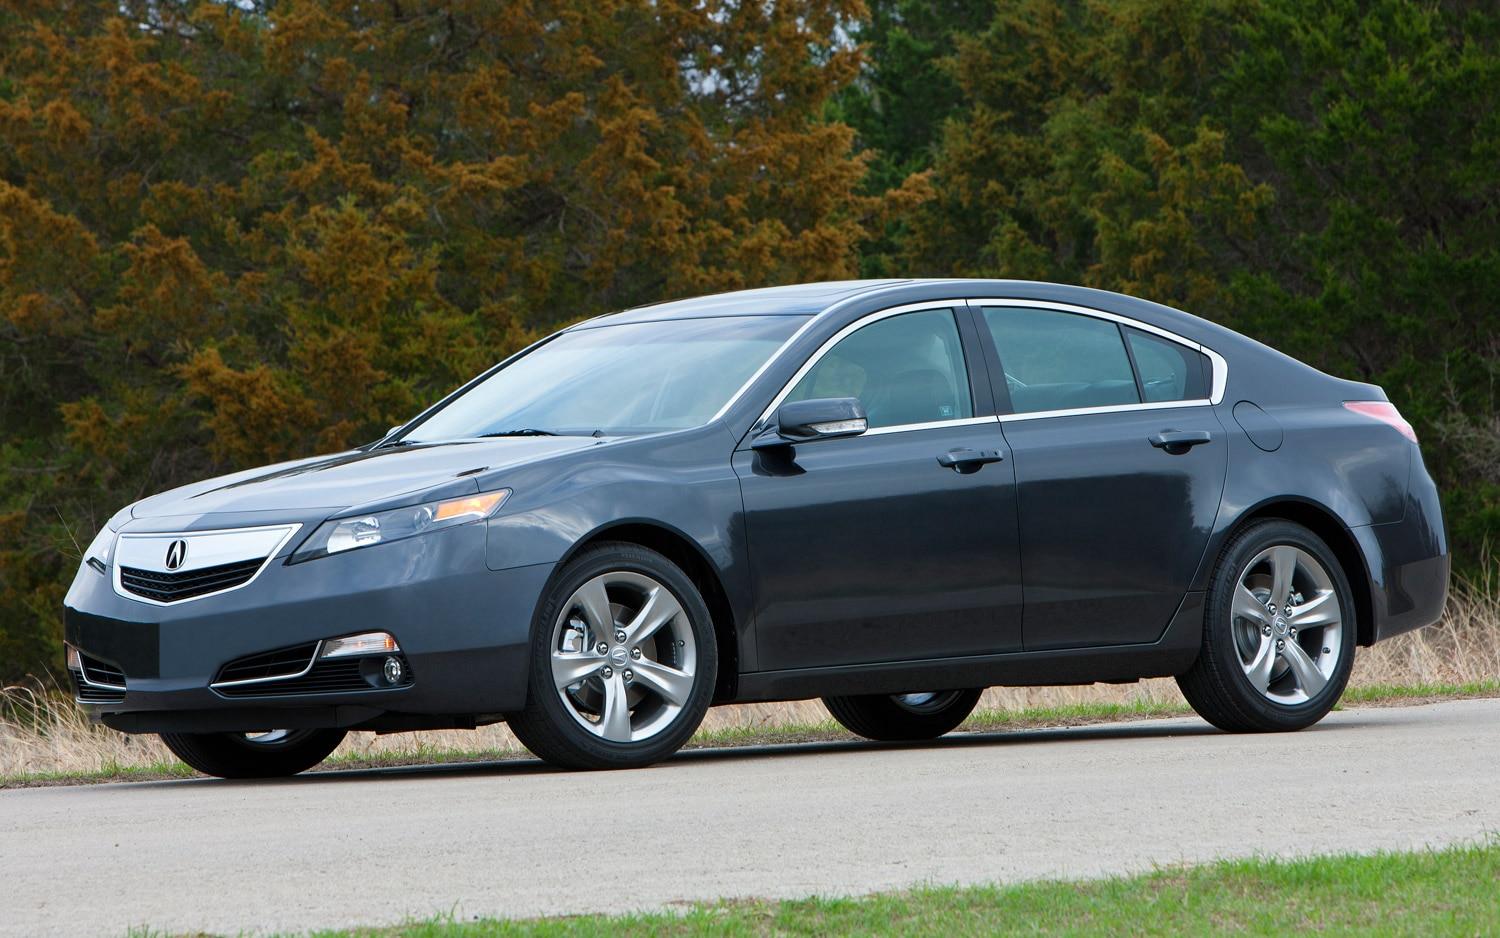 acura releases pricing on 2013 tl manual transmission model starts rh automobilemag com used acura tl manual transmission for sale used acura tl manual transmission for sale